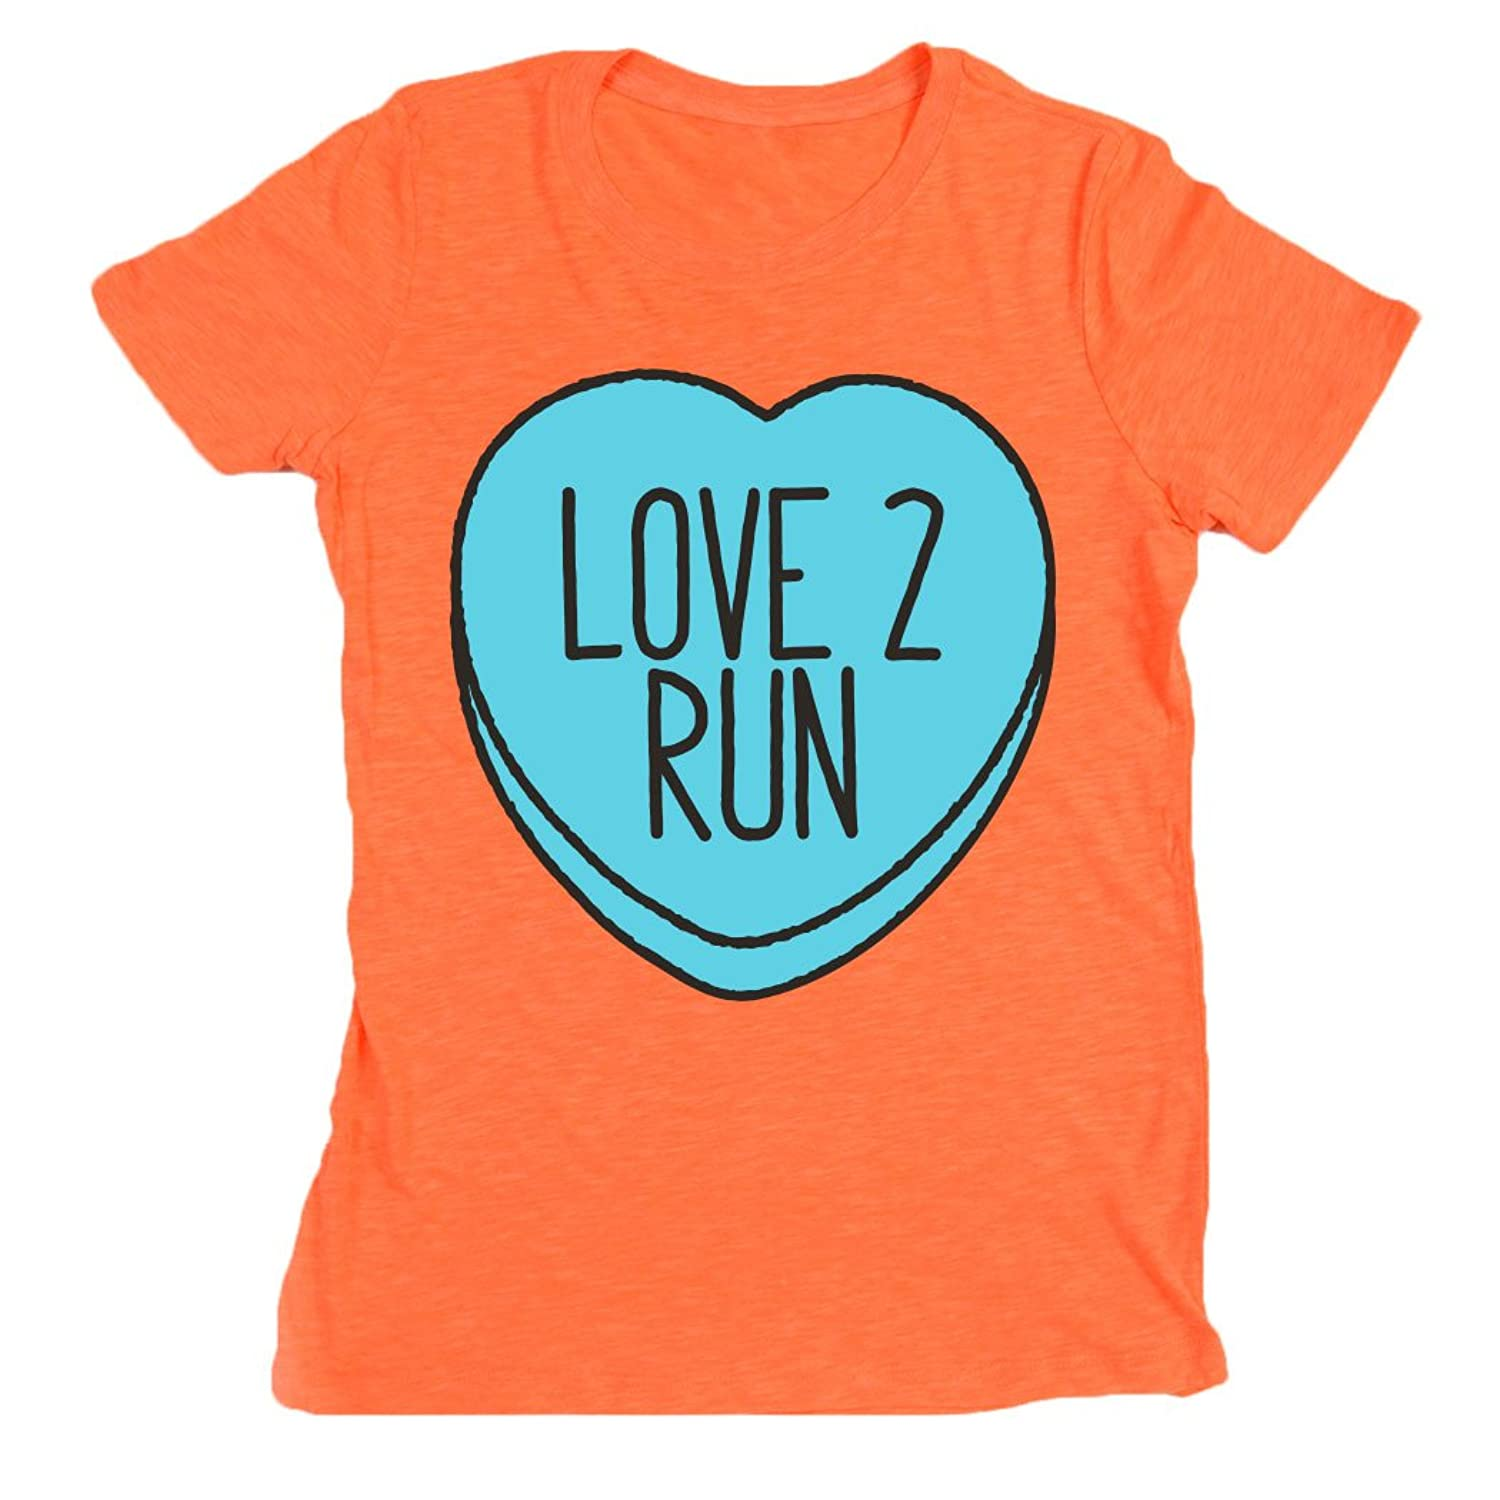 Gone For a Run Women's Neon Series Runners Tee Love 2 Run Candy